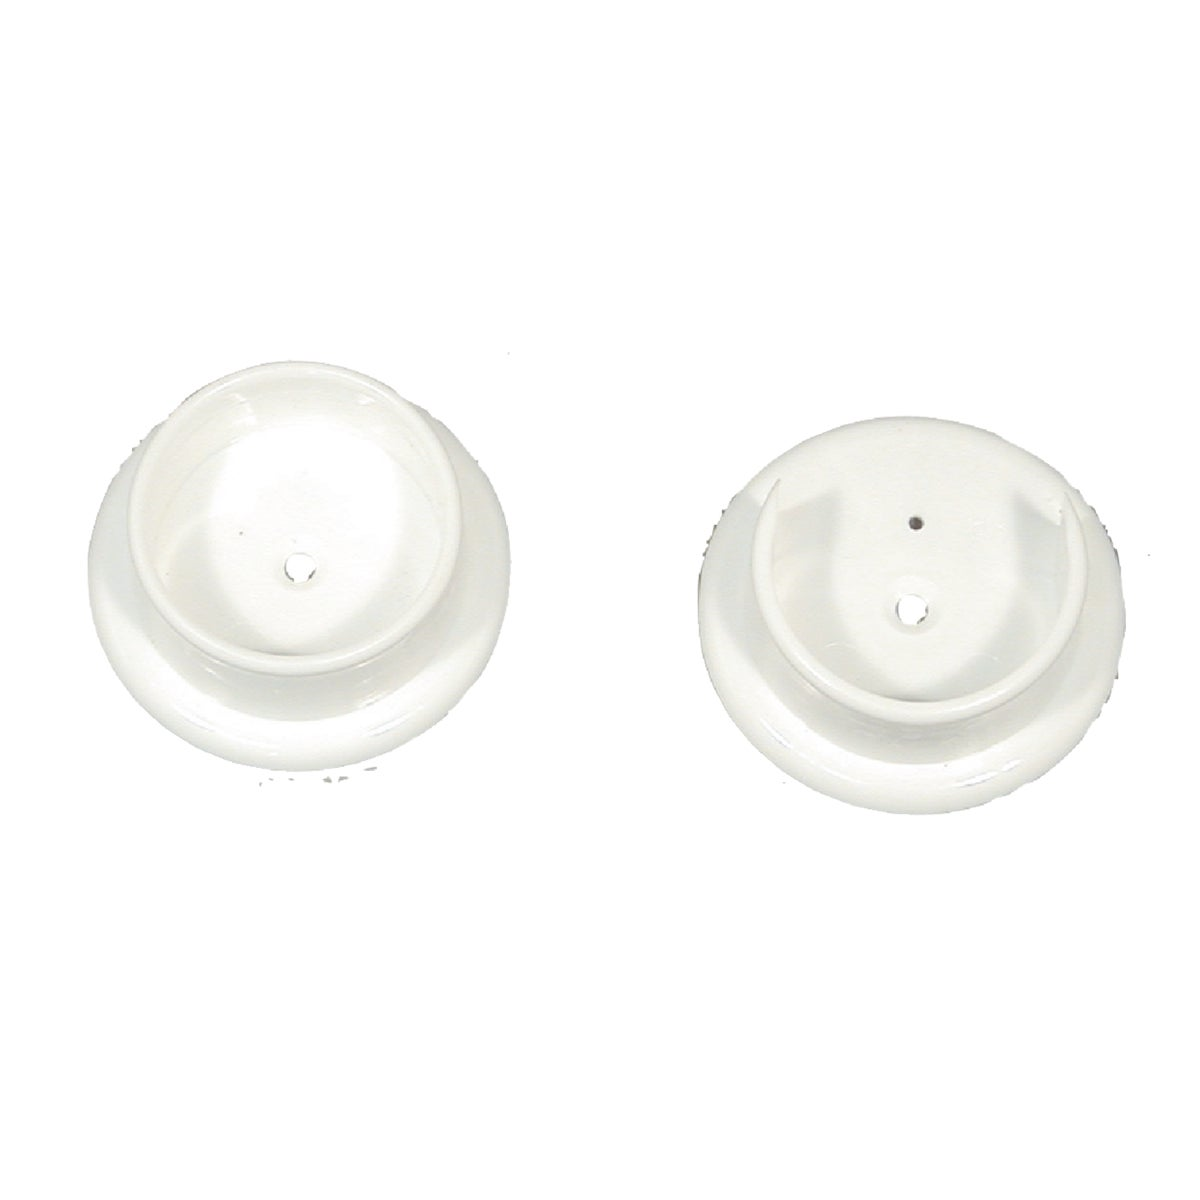 2PK WHT POLE SOCKET